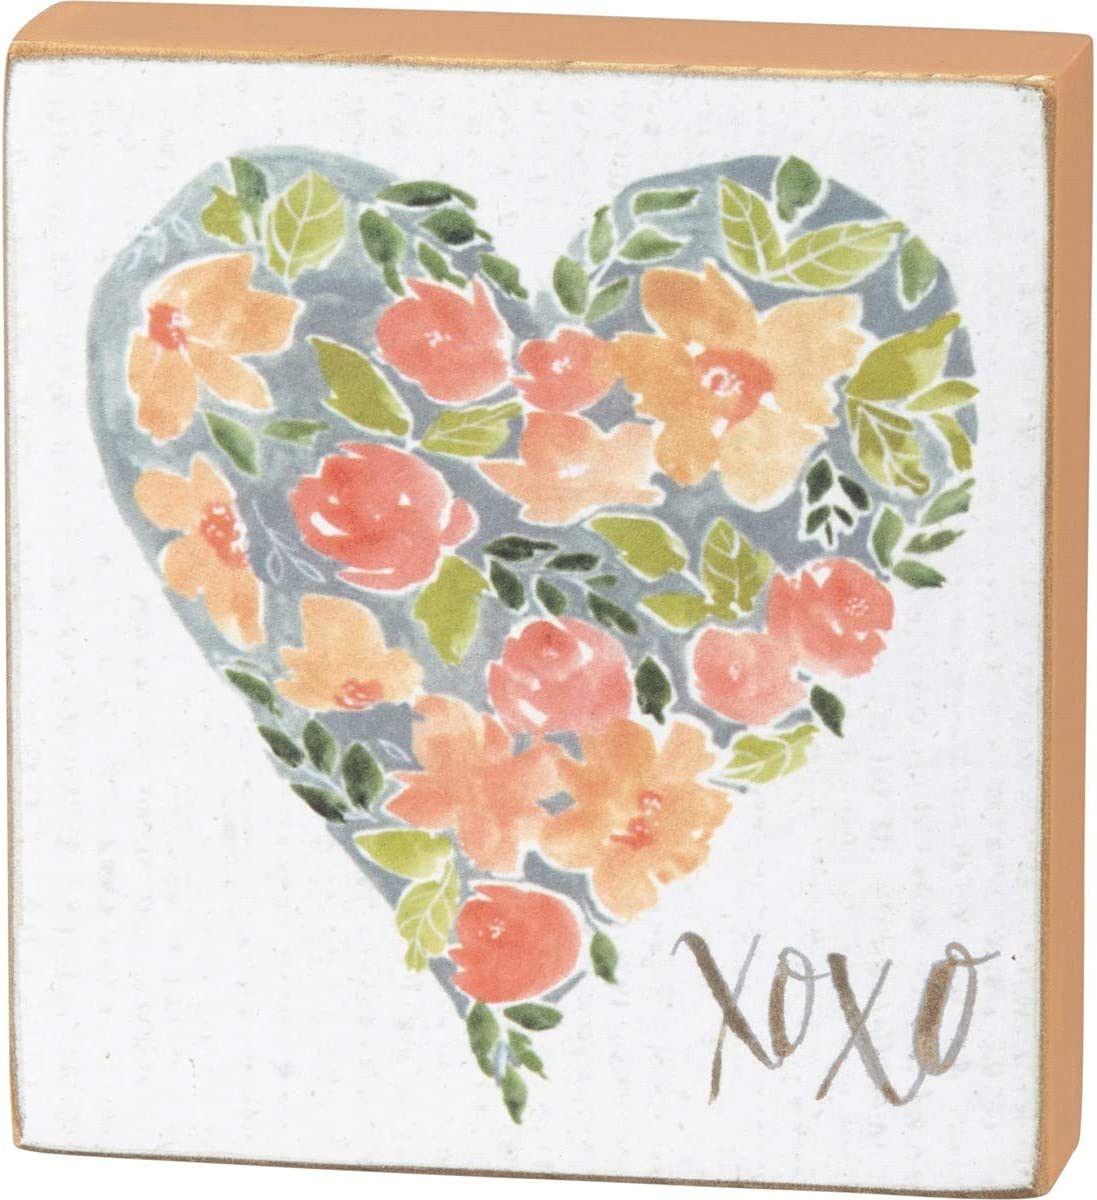 Primitives by Kathy 101911, Block Sign - XOXO and Heart Shaped Floral Design, Multi